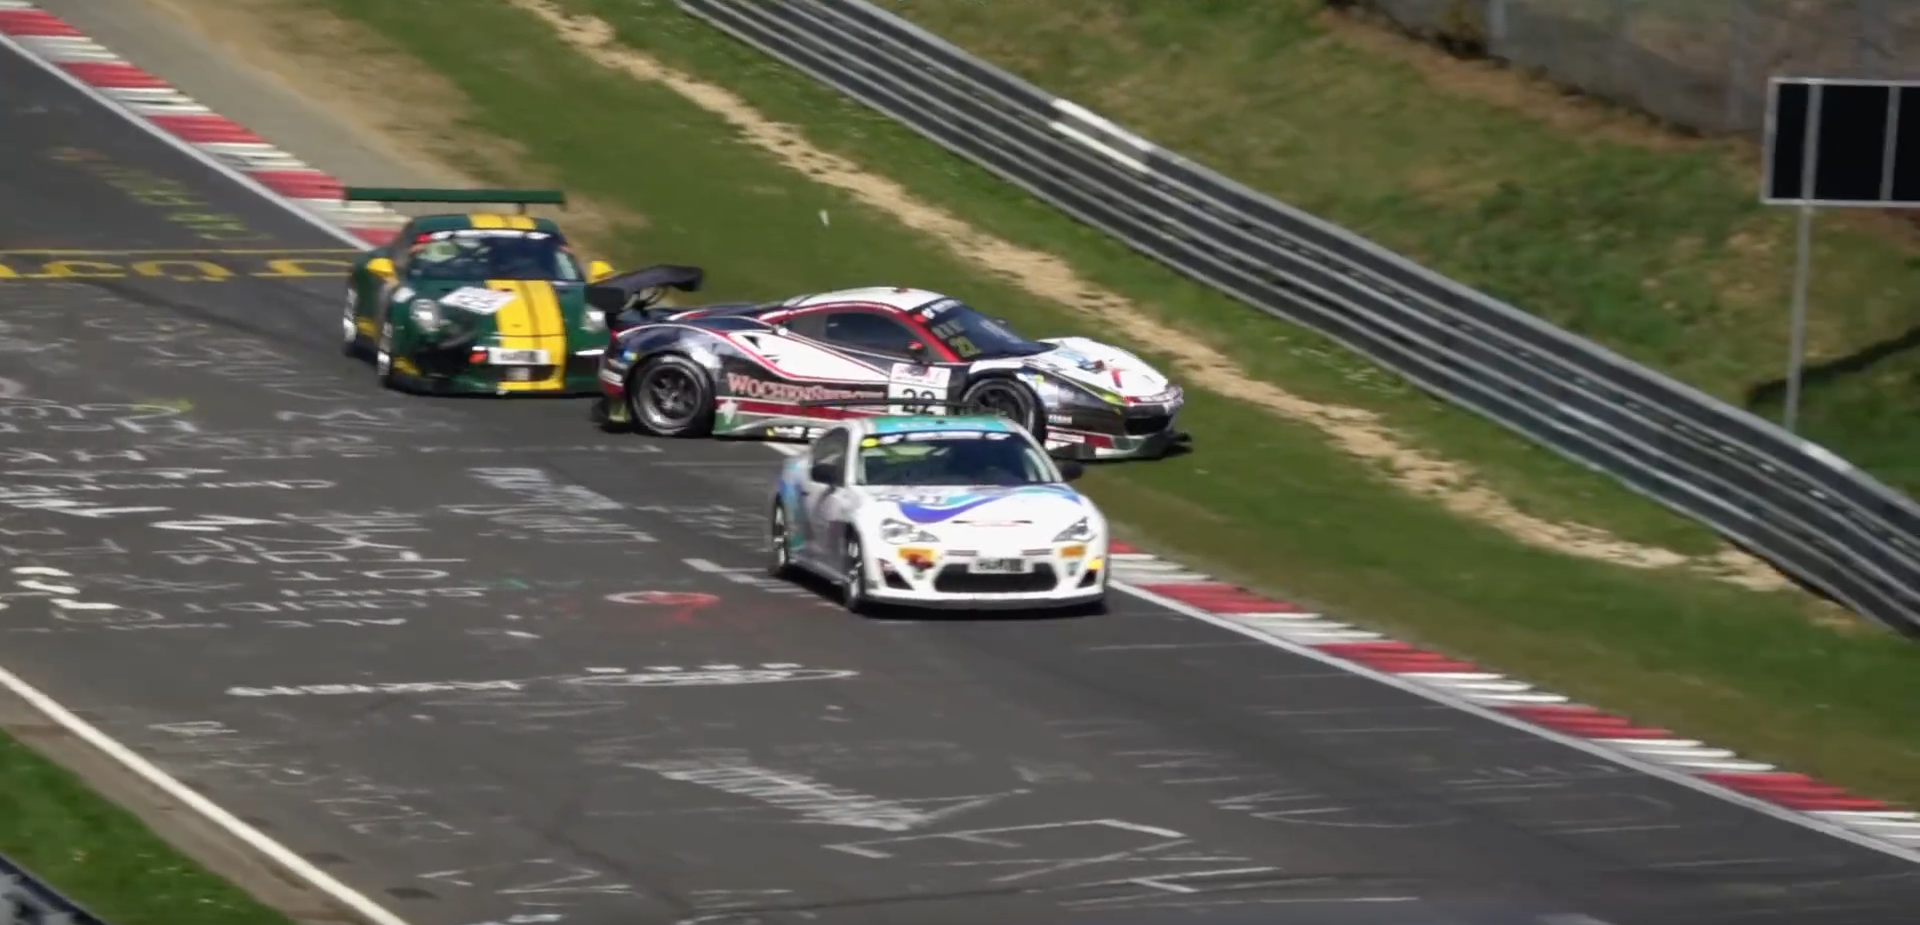 Ferrari 488 GT3 Gets Wrecked At Nürburgring As Overtake Goes Horribly Wrong